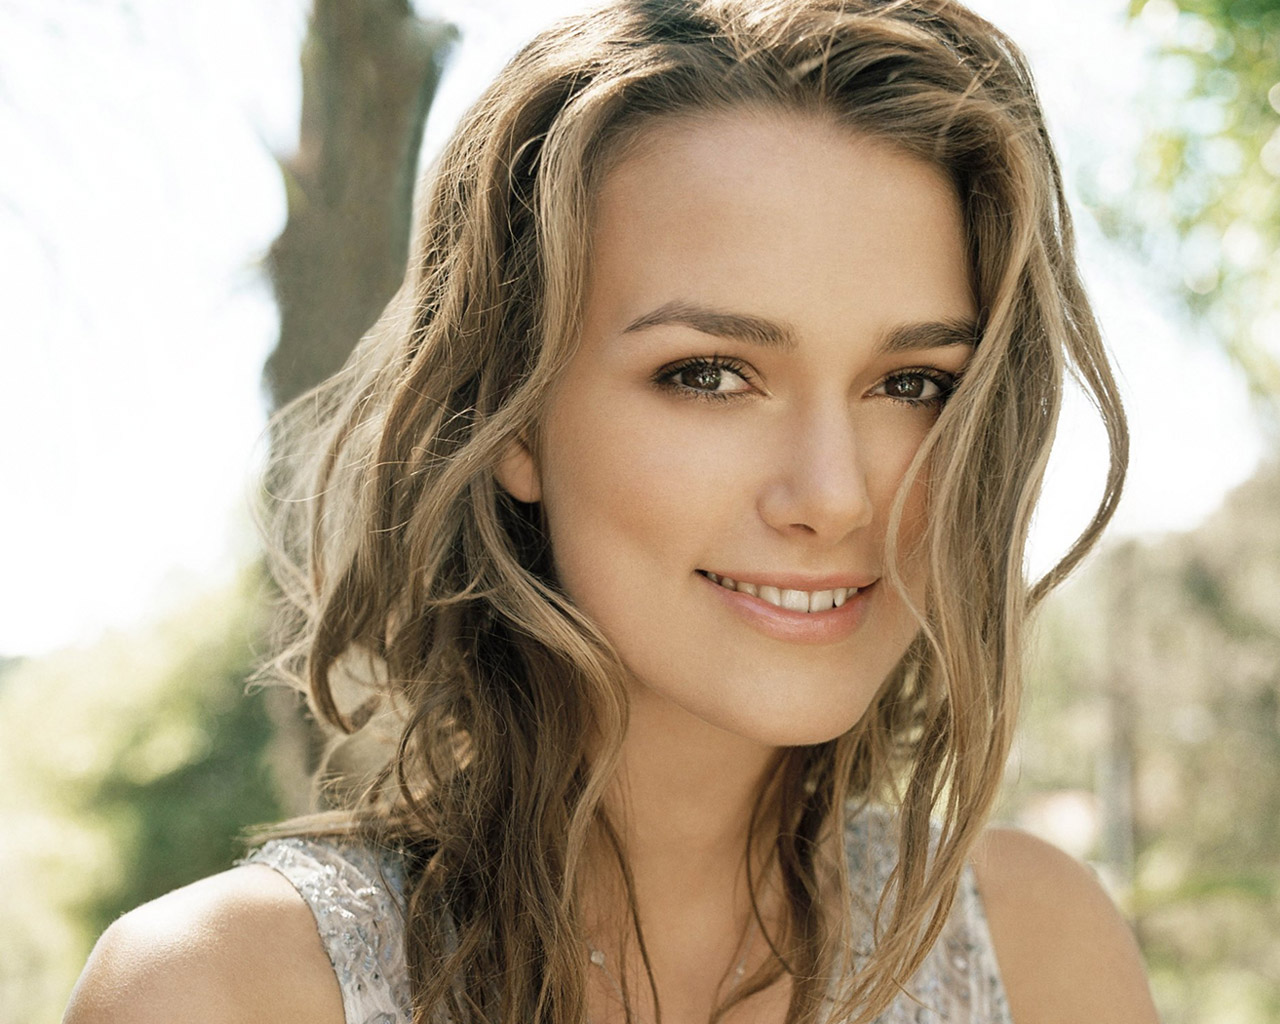 keira-knightley-images